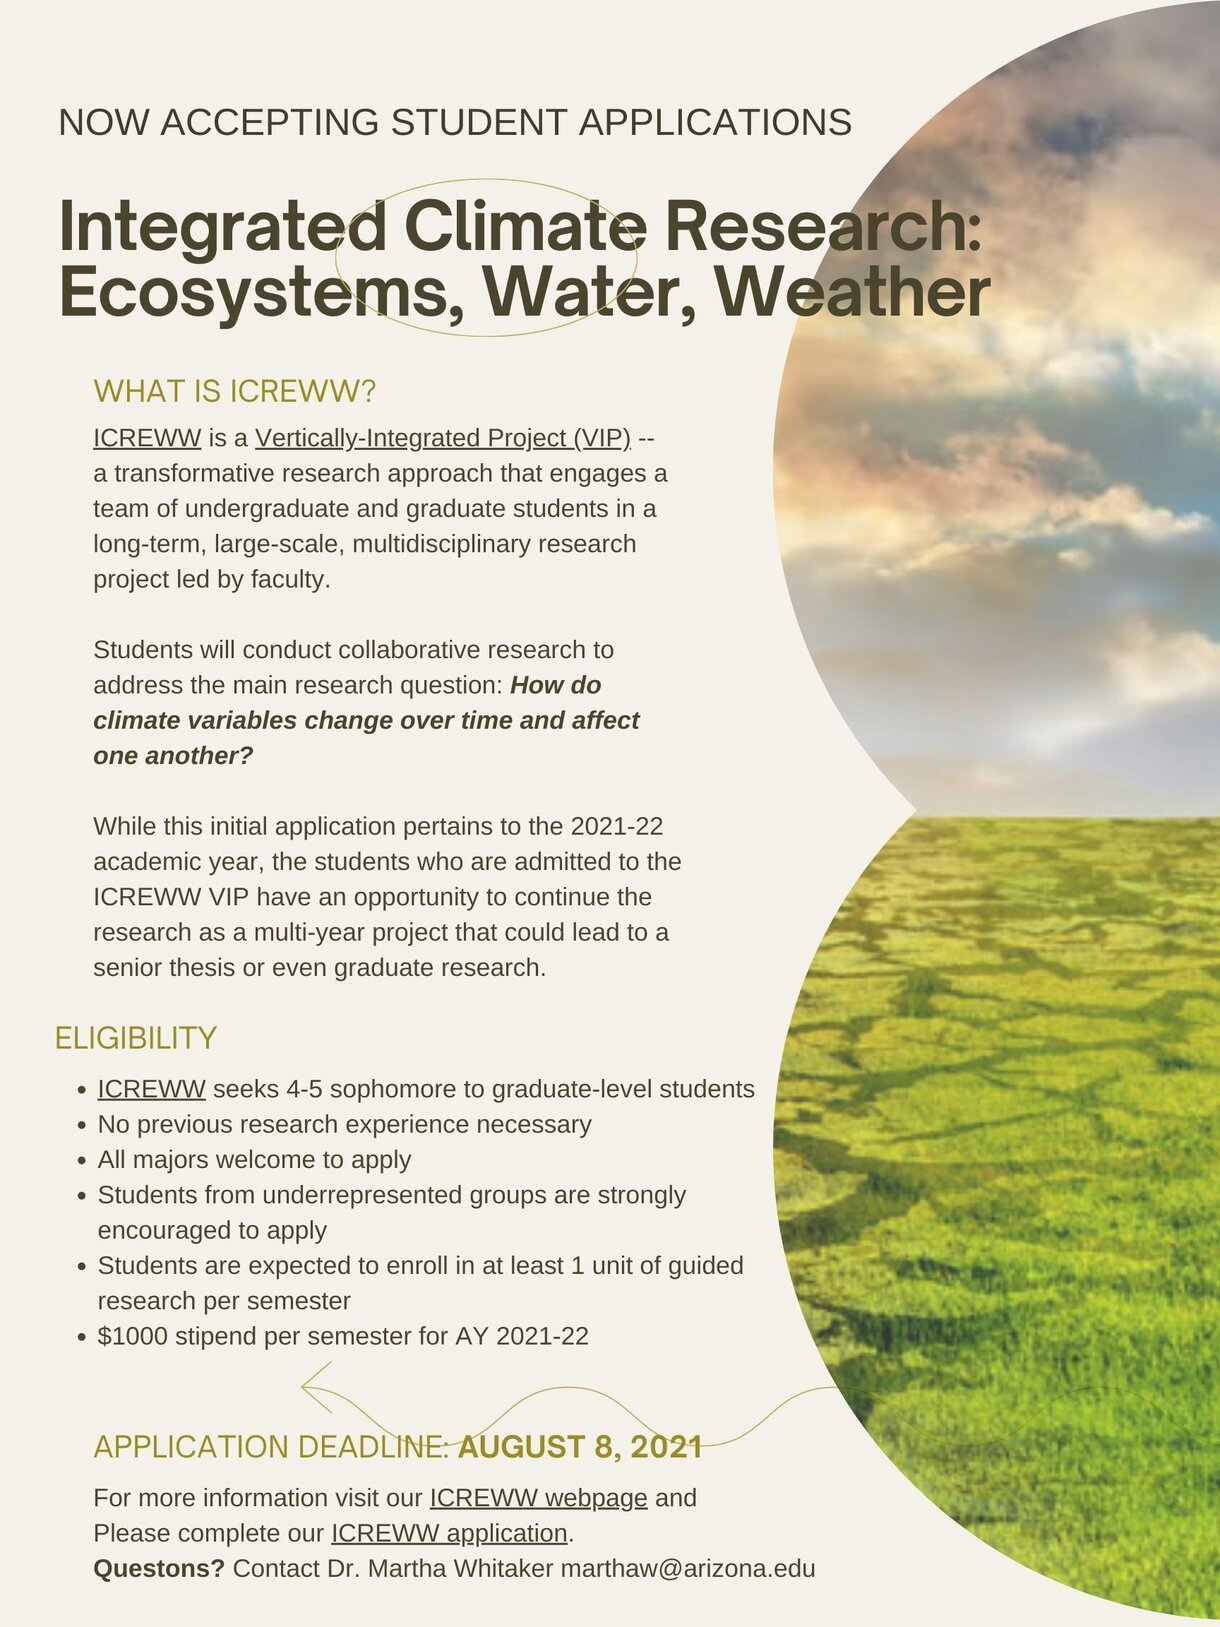 Image Integrated Climate Research Ecosystems Water Weather Poster